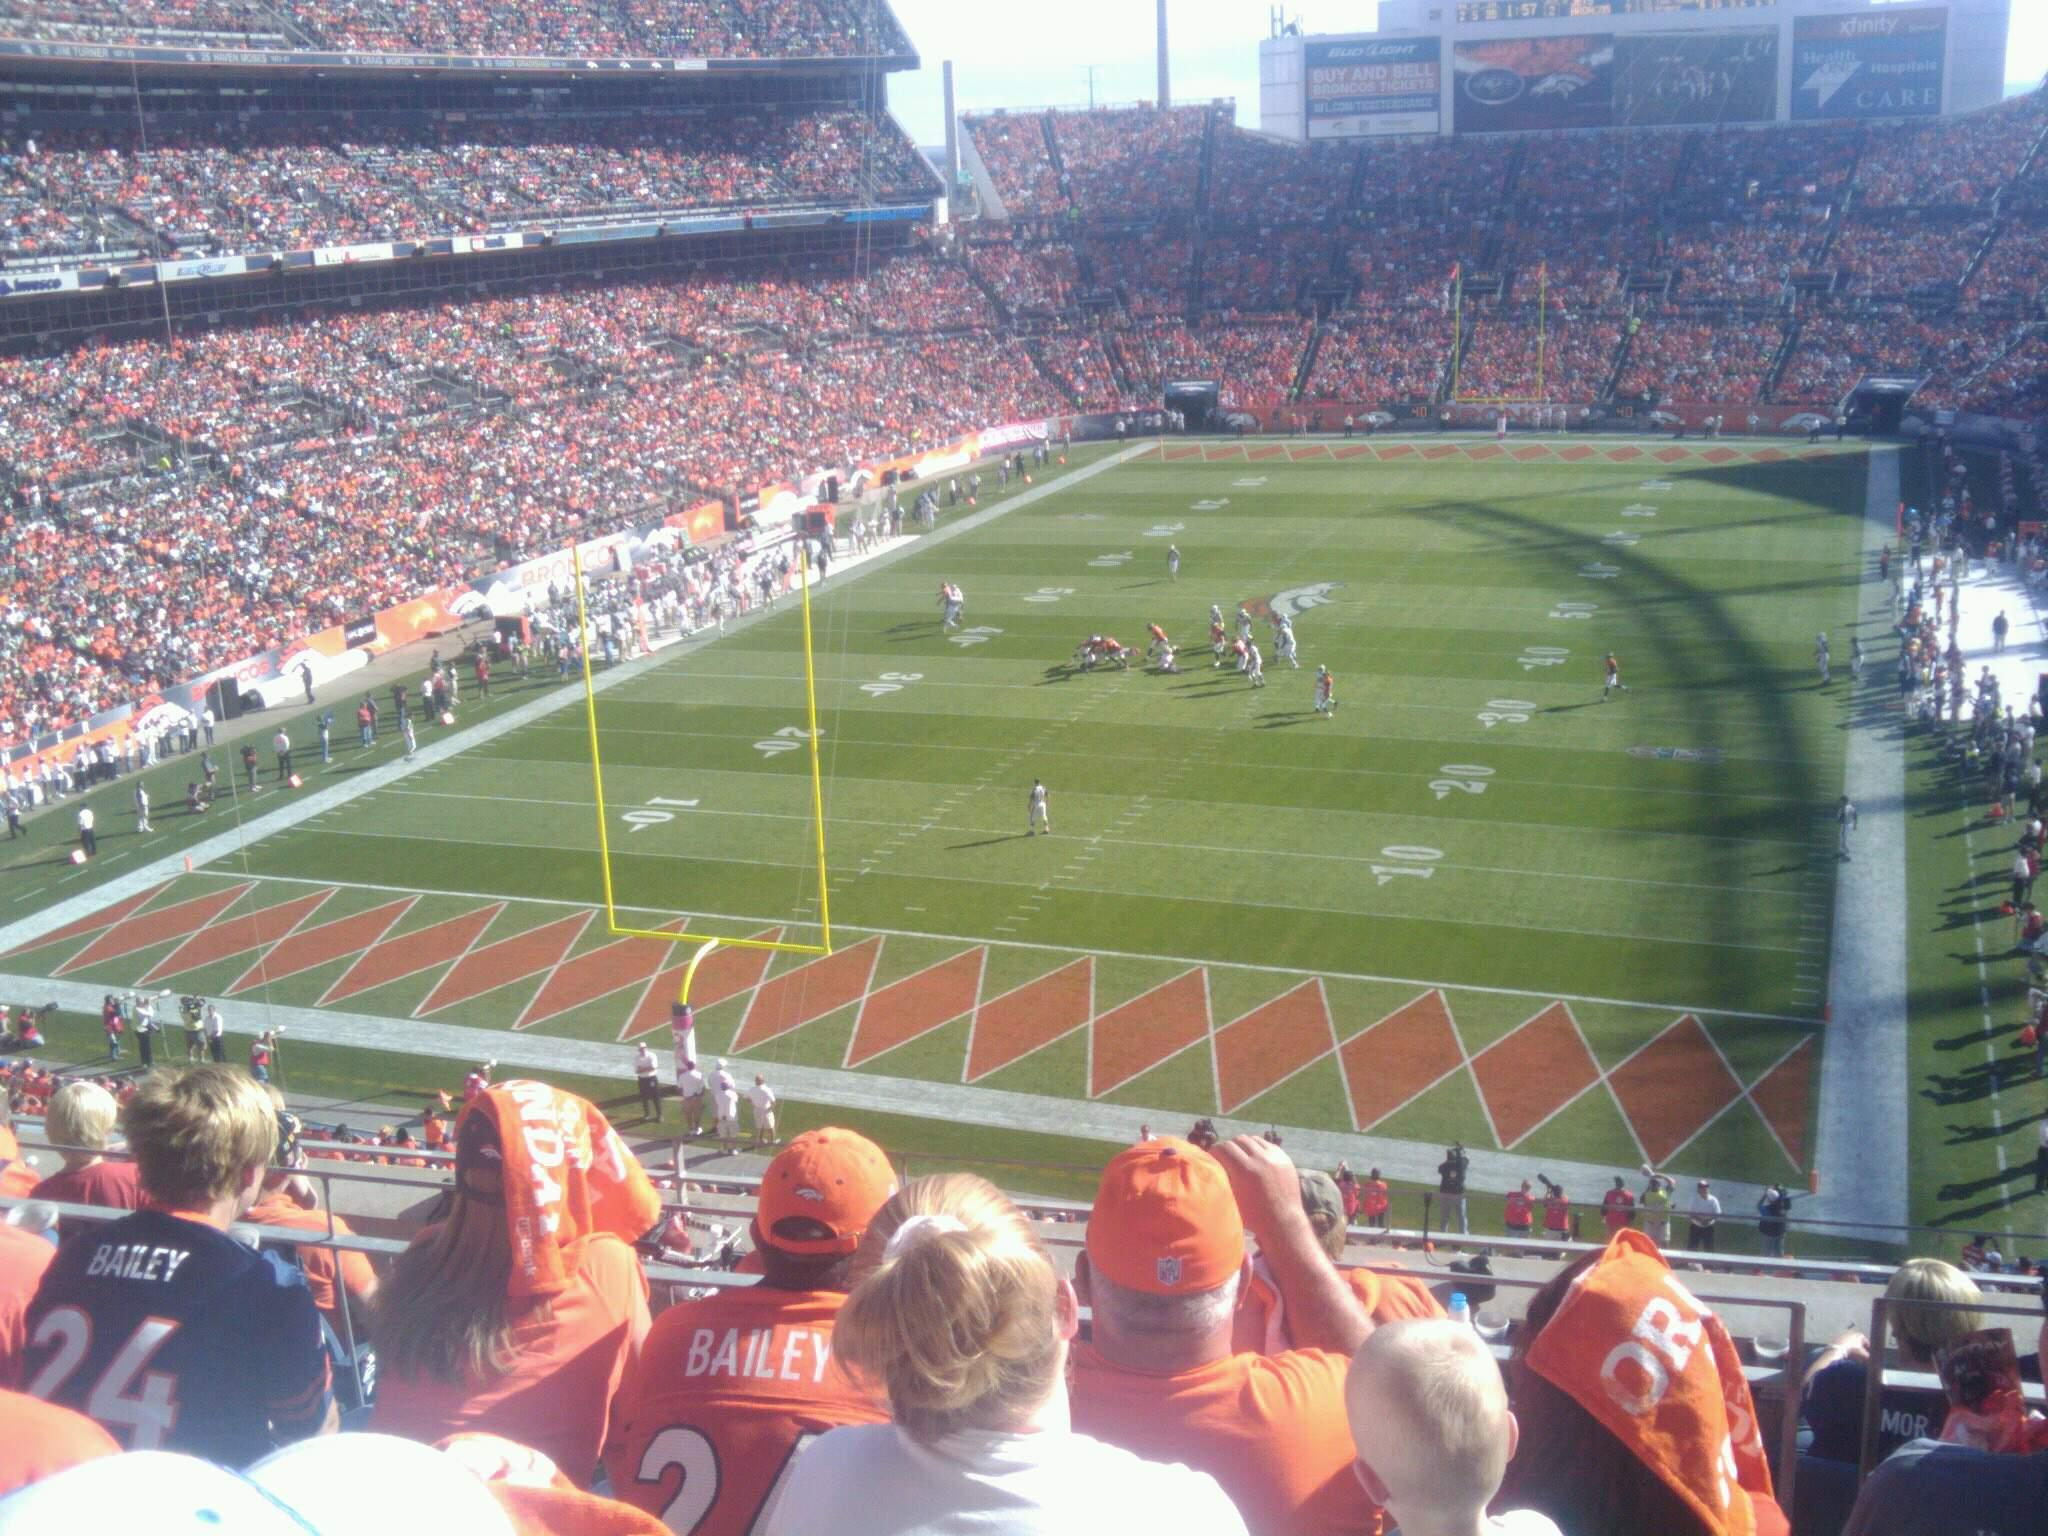 Broncos Stadium at Mile High Section 321 Row 7 Seat 9